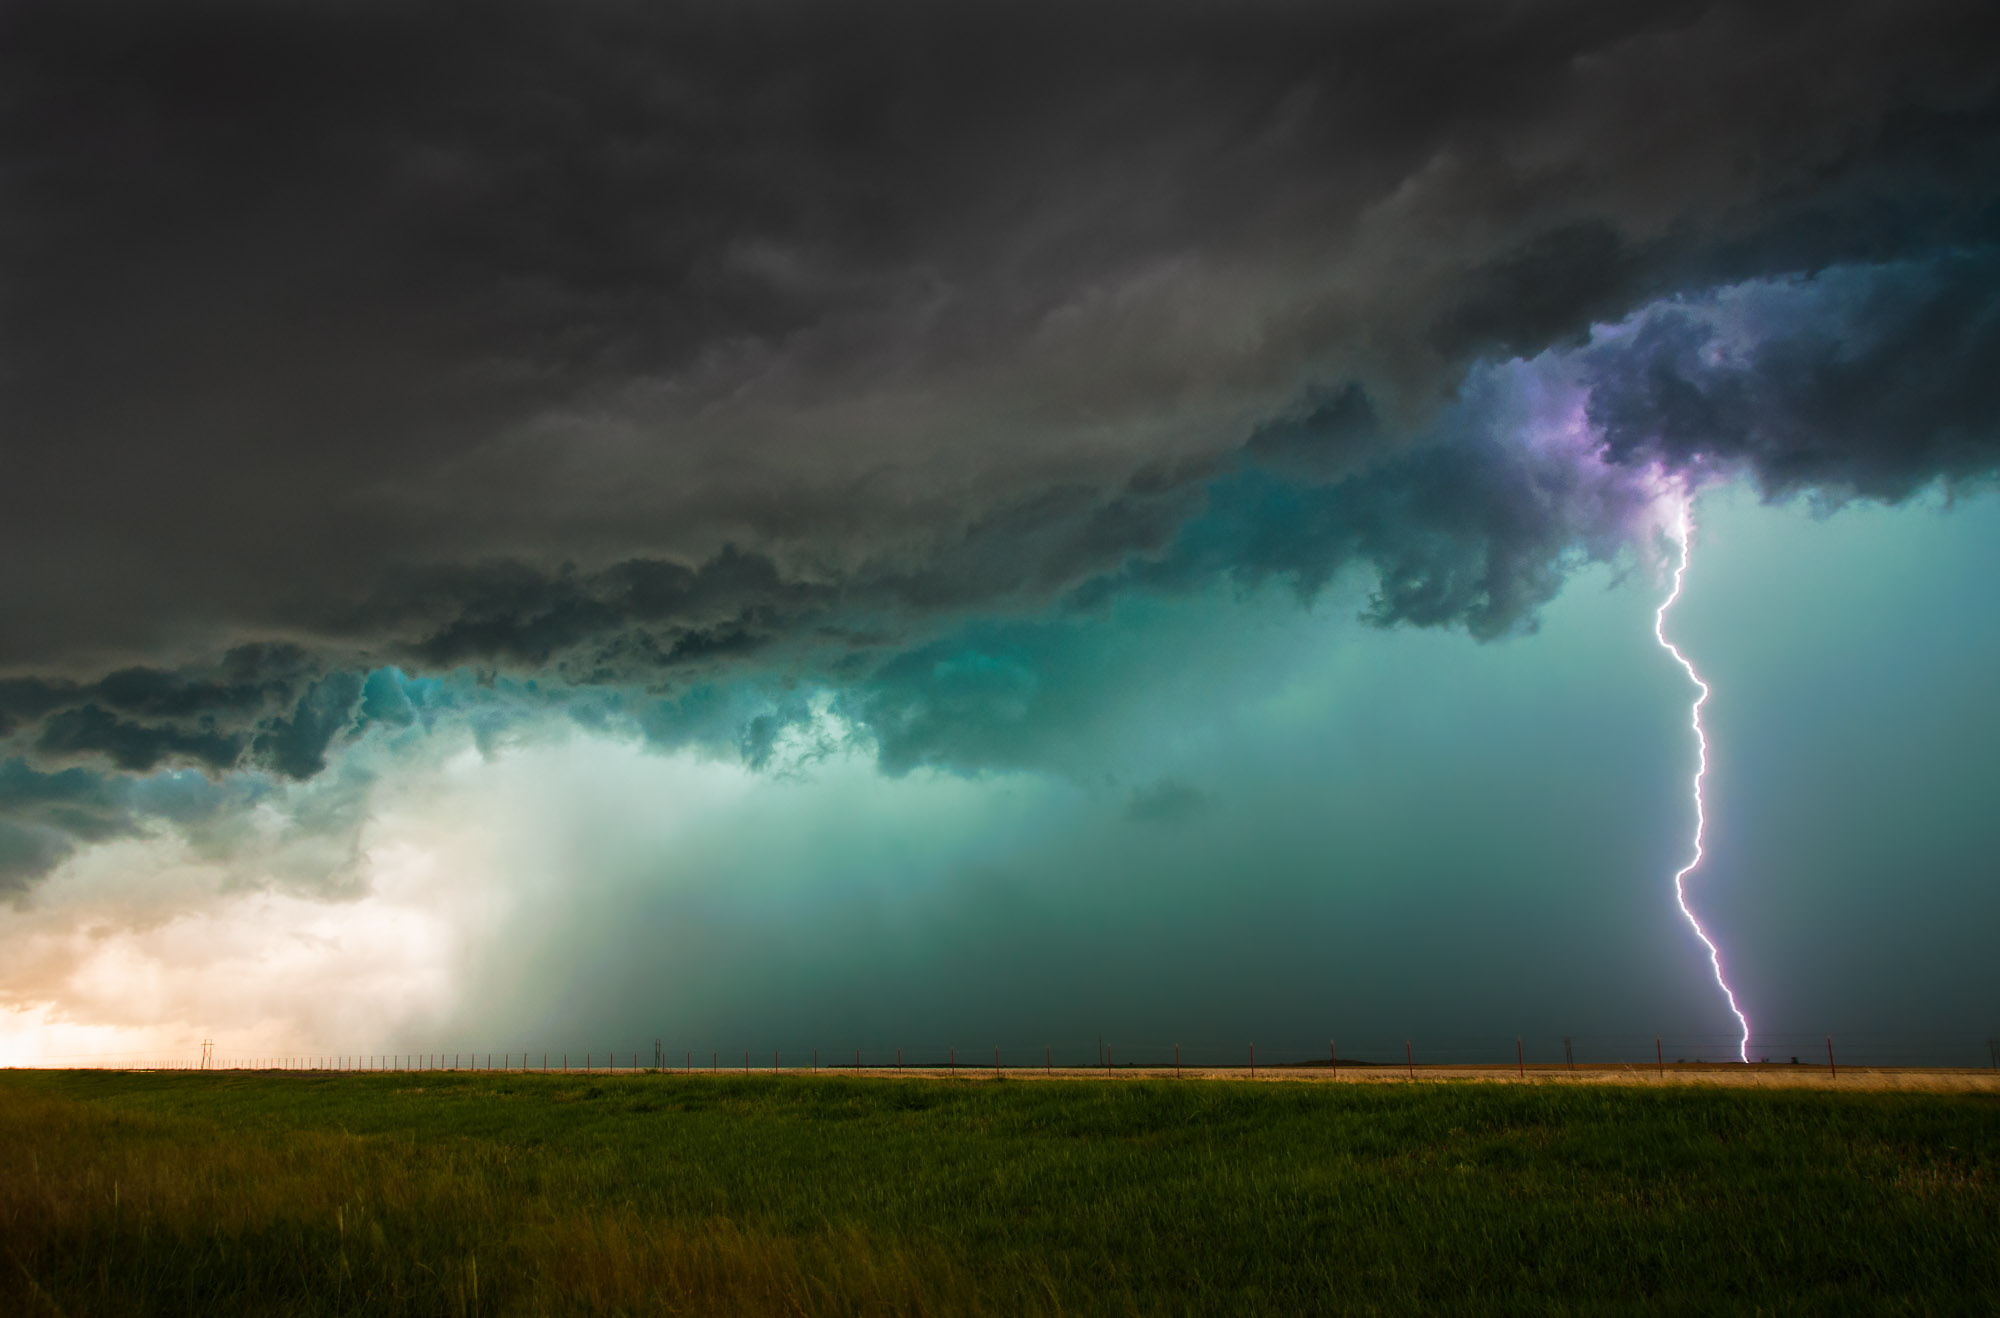 Lightning and green storm clouds - near Olustee, Oklahoma